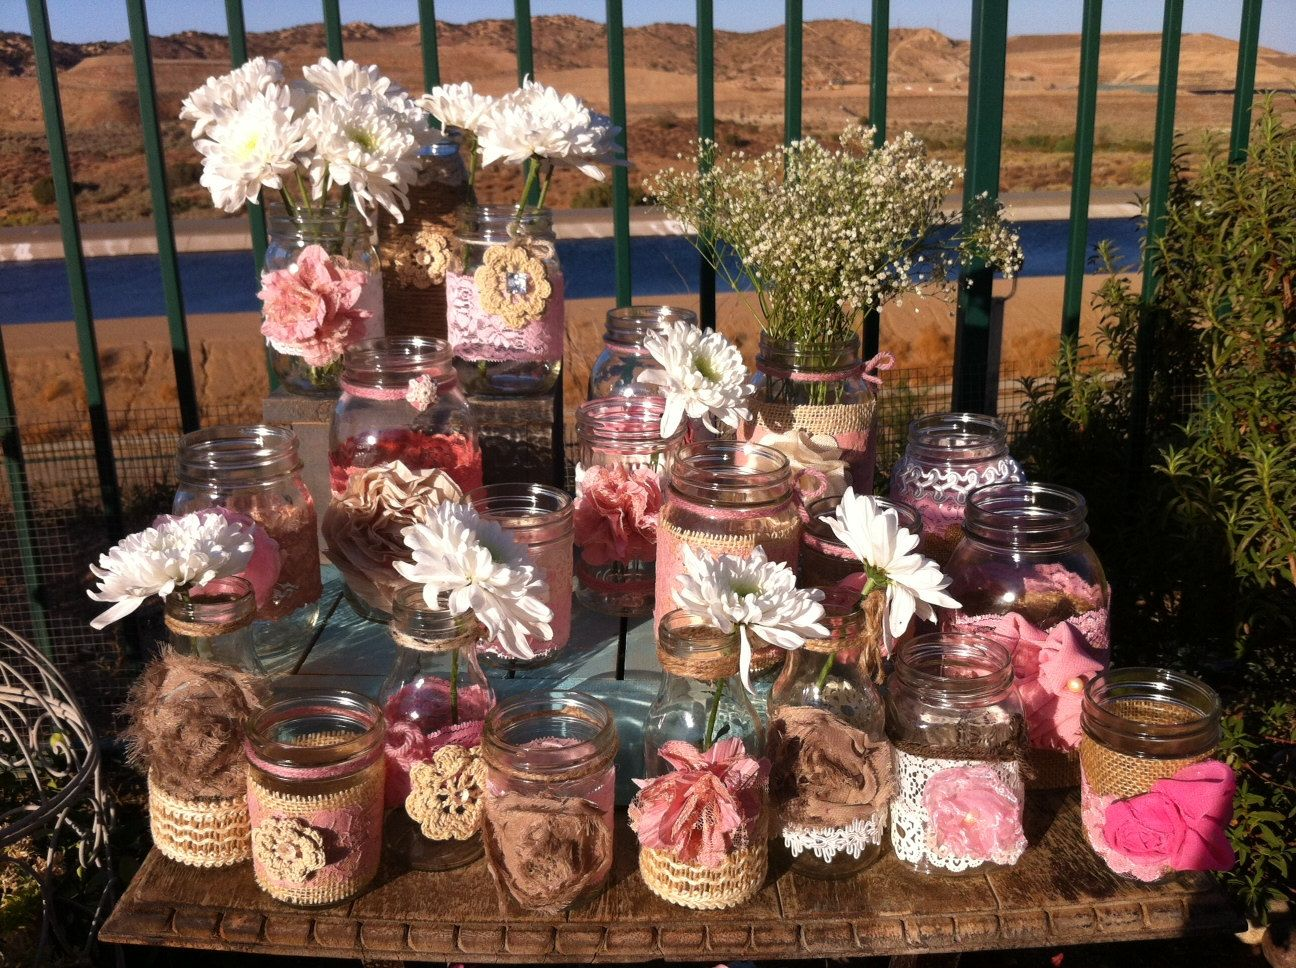 Rustic pink wedding decor 15 bulk burlap lace mason jars lanterns rustic pink wedding decor 15 bulk burlap lace mason jars lanternsvases head junglespirit